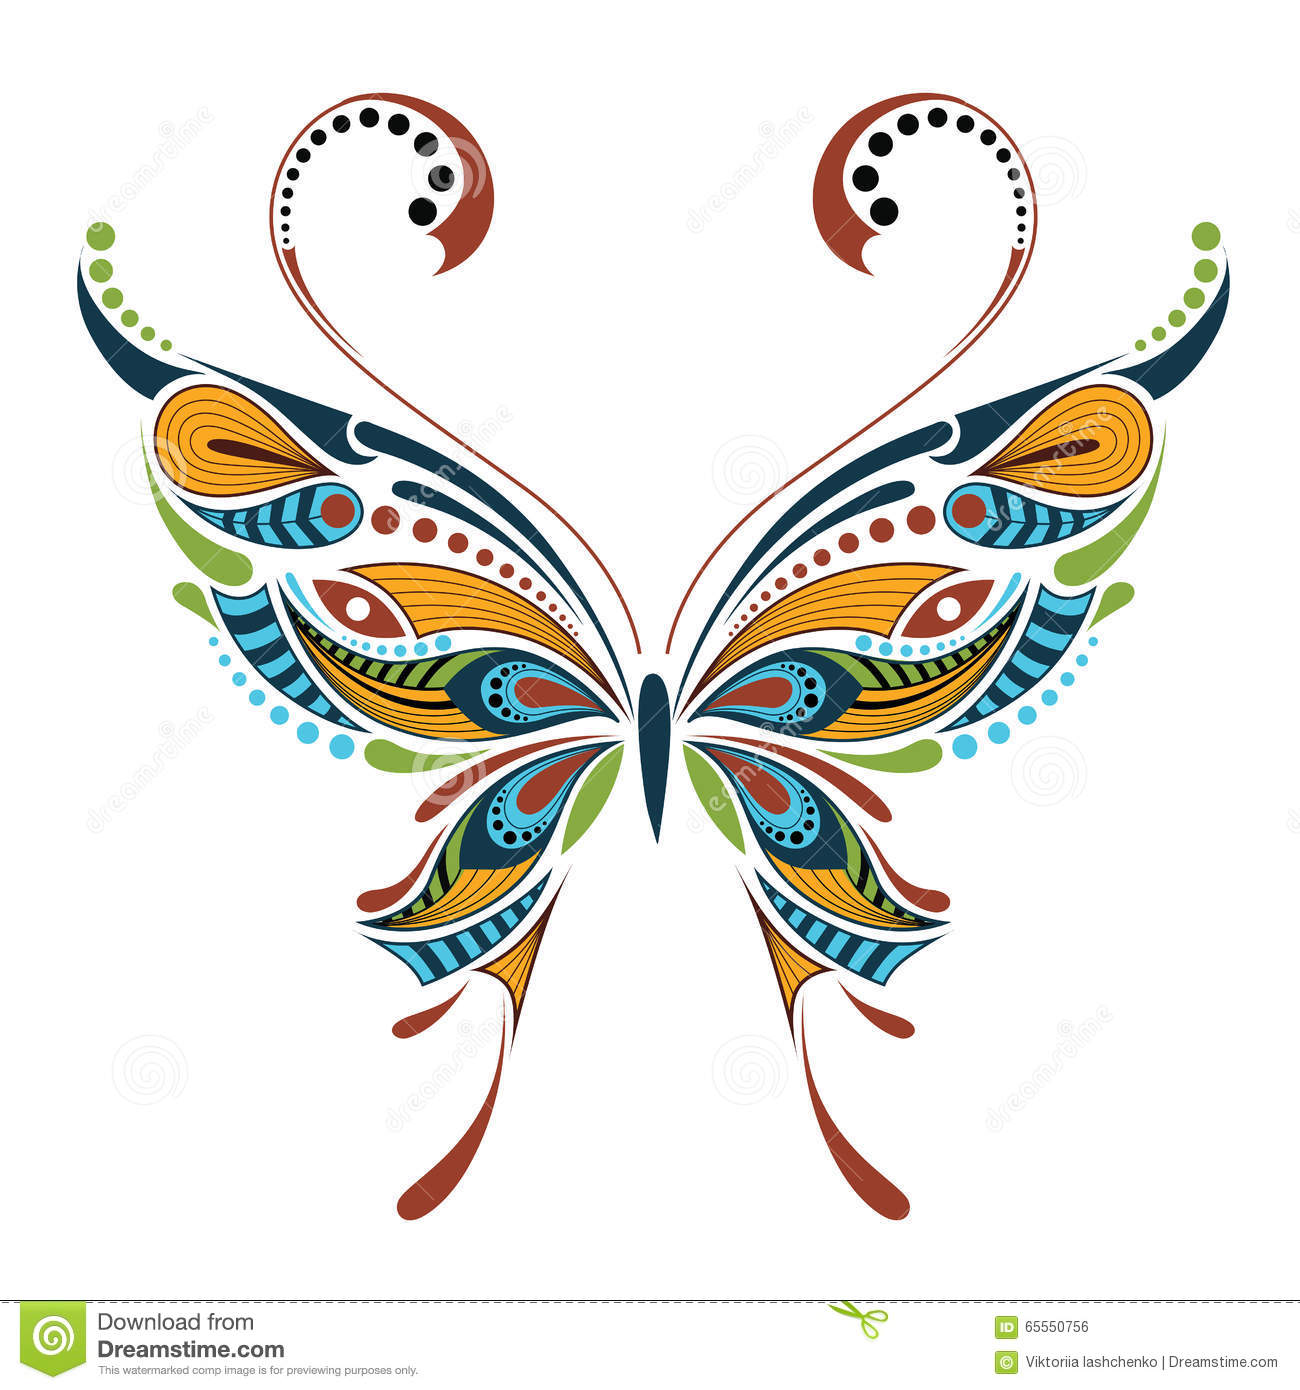 Patterned Colored Butterfly. African / Indian / Totem